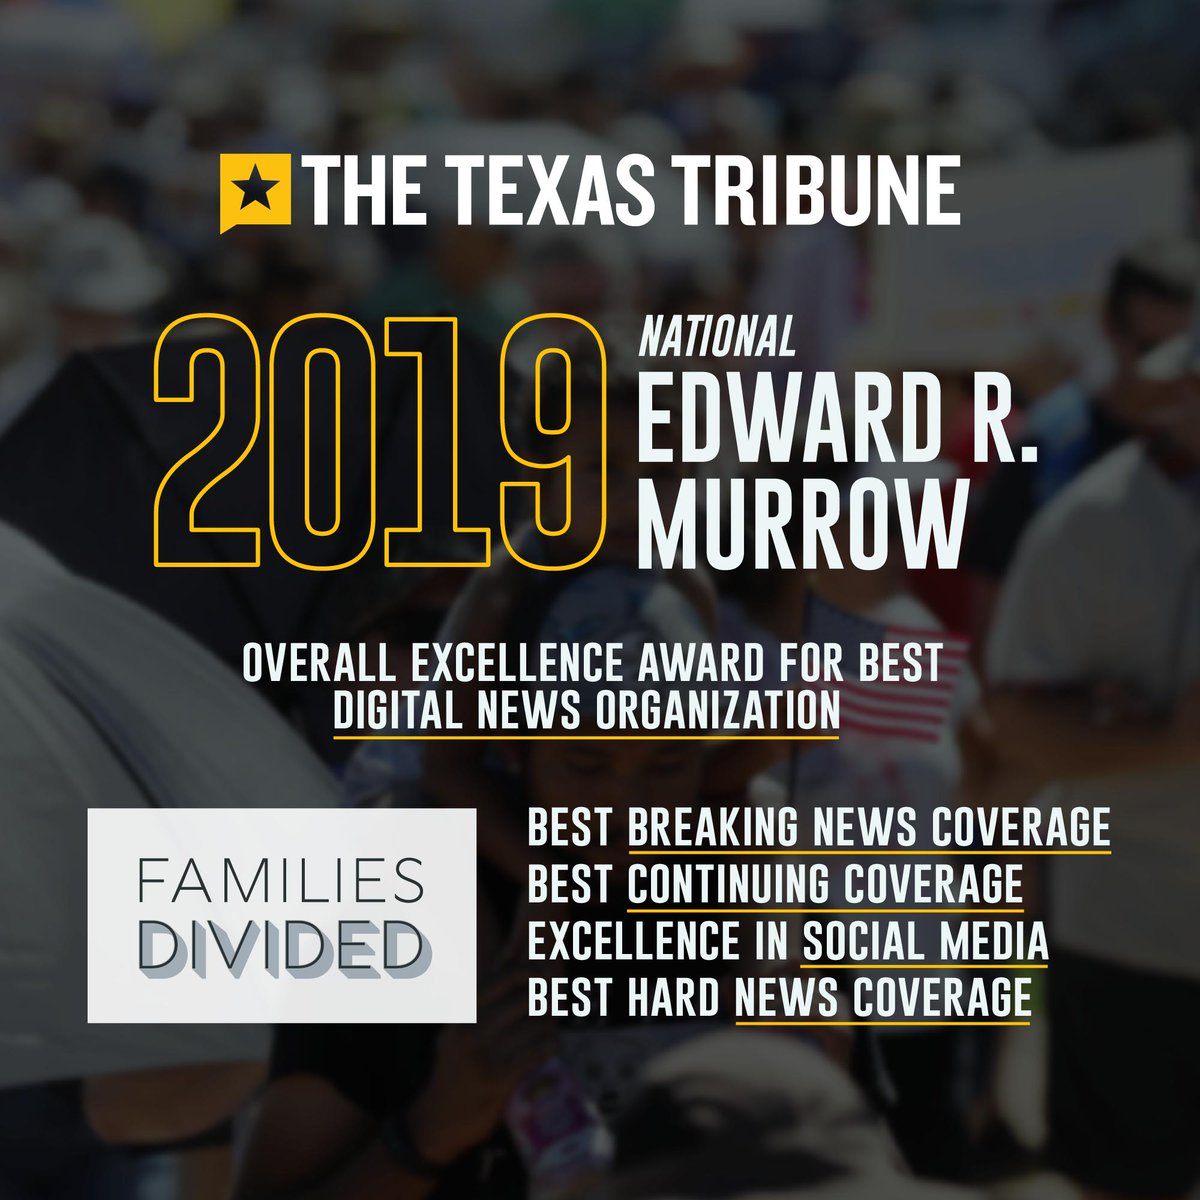 @TexasTribune's photo on #Murrow